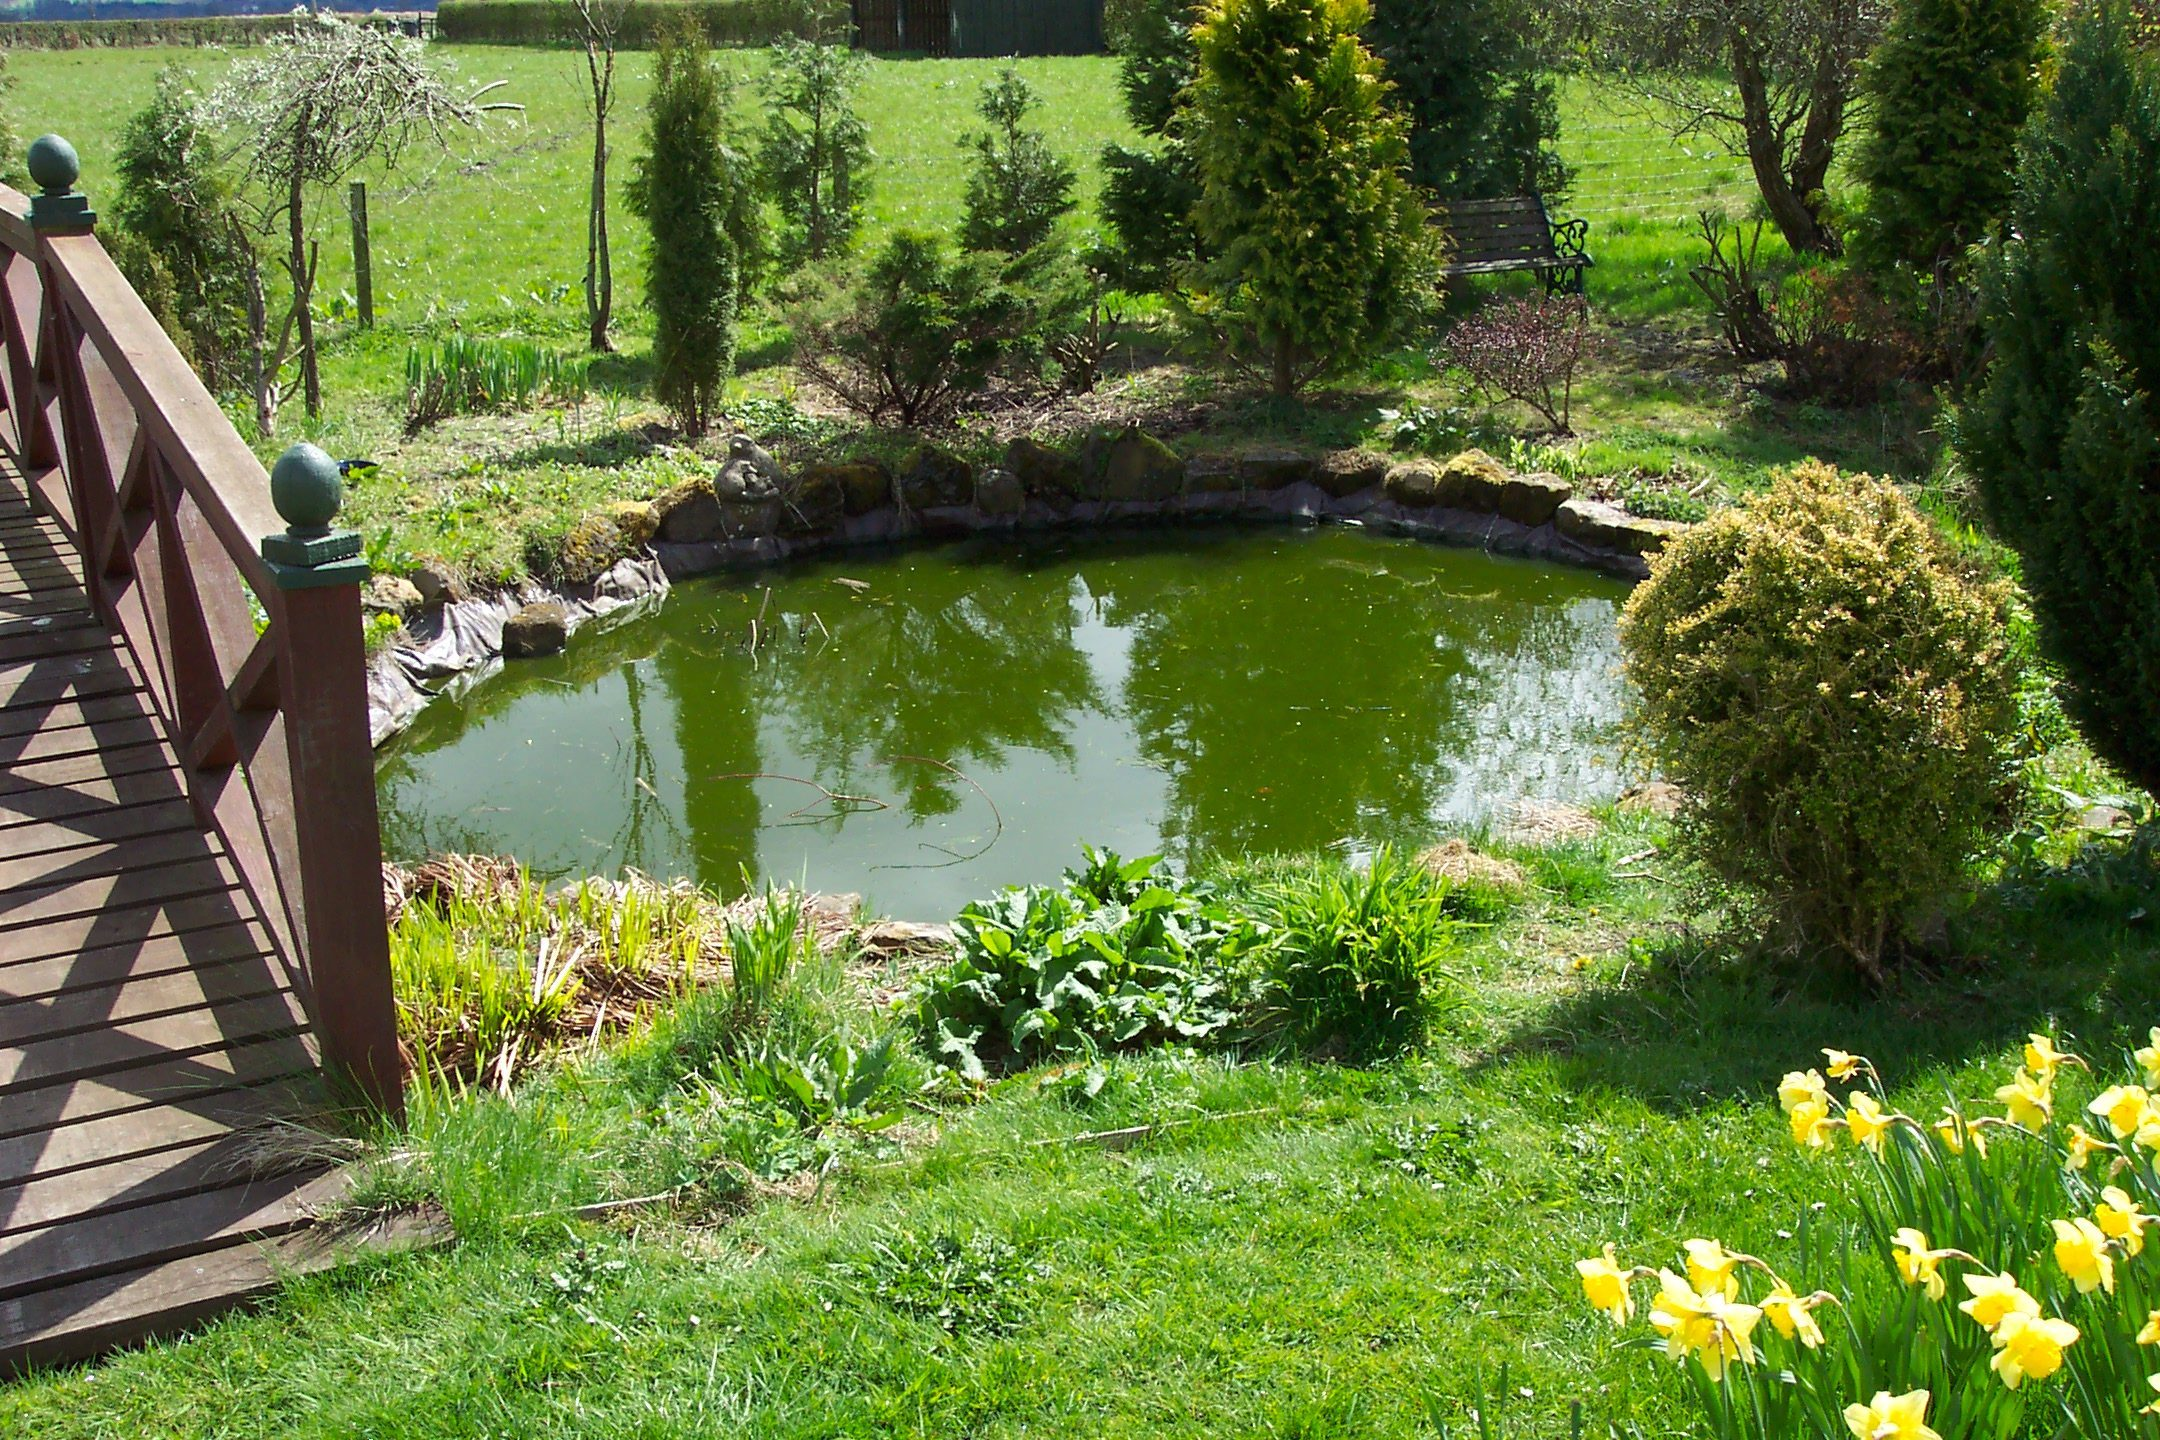 A pond with seriously green water. This is likely to have almost no oxygen in it at night in the summer.